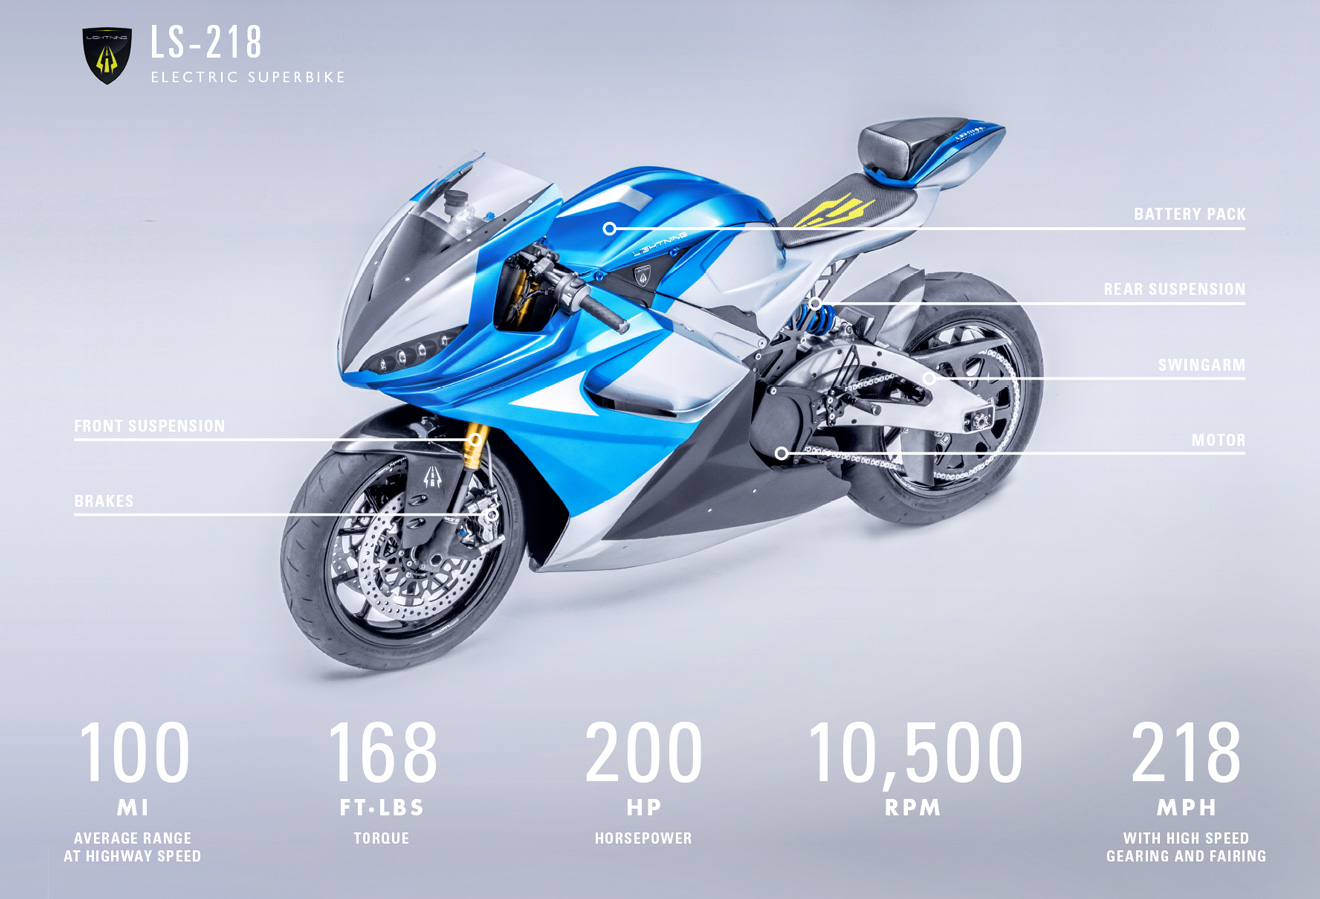 LS-218 Superbike Specs electric motorcycle